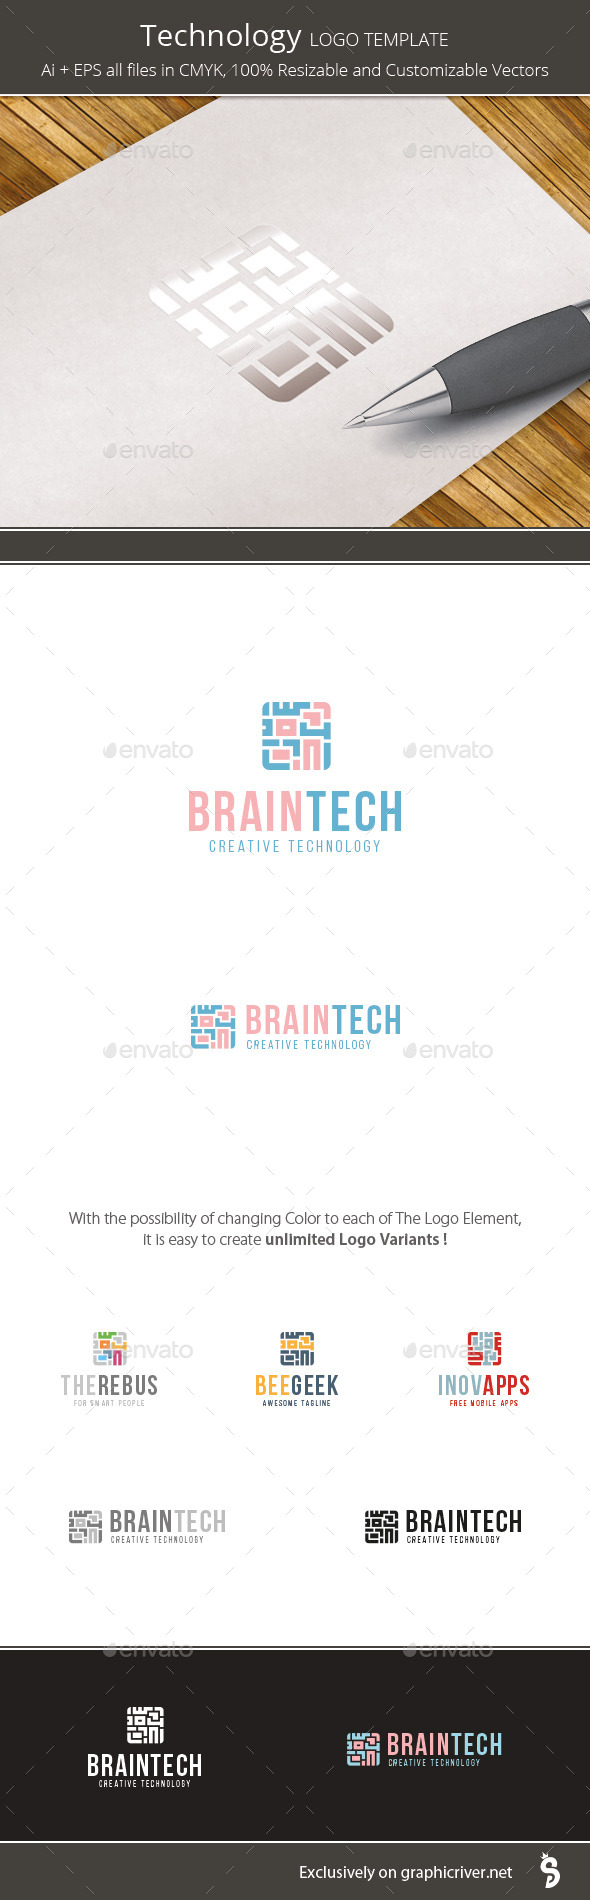 GraphicRiver Technology App Logo Template 9995422